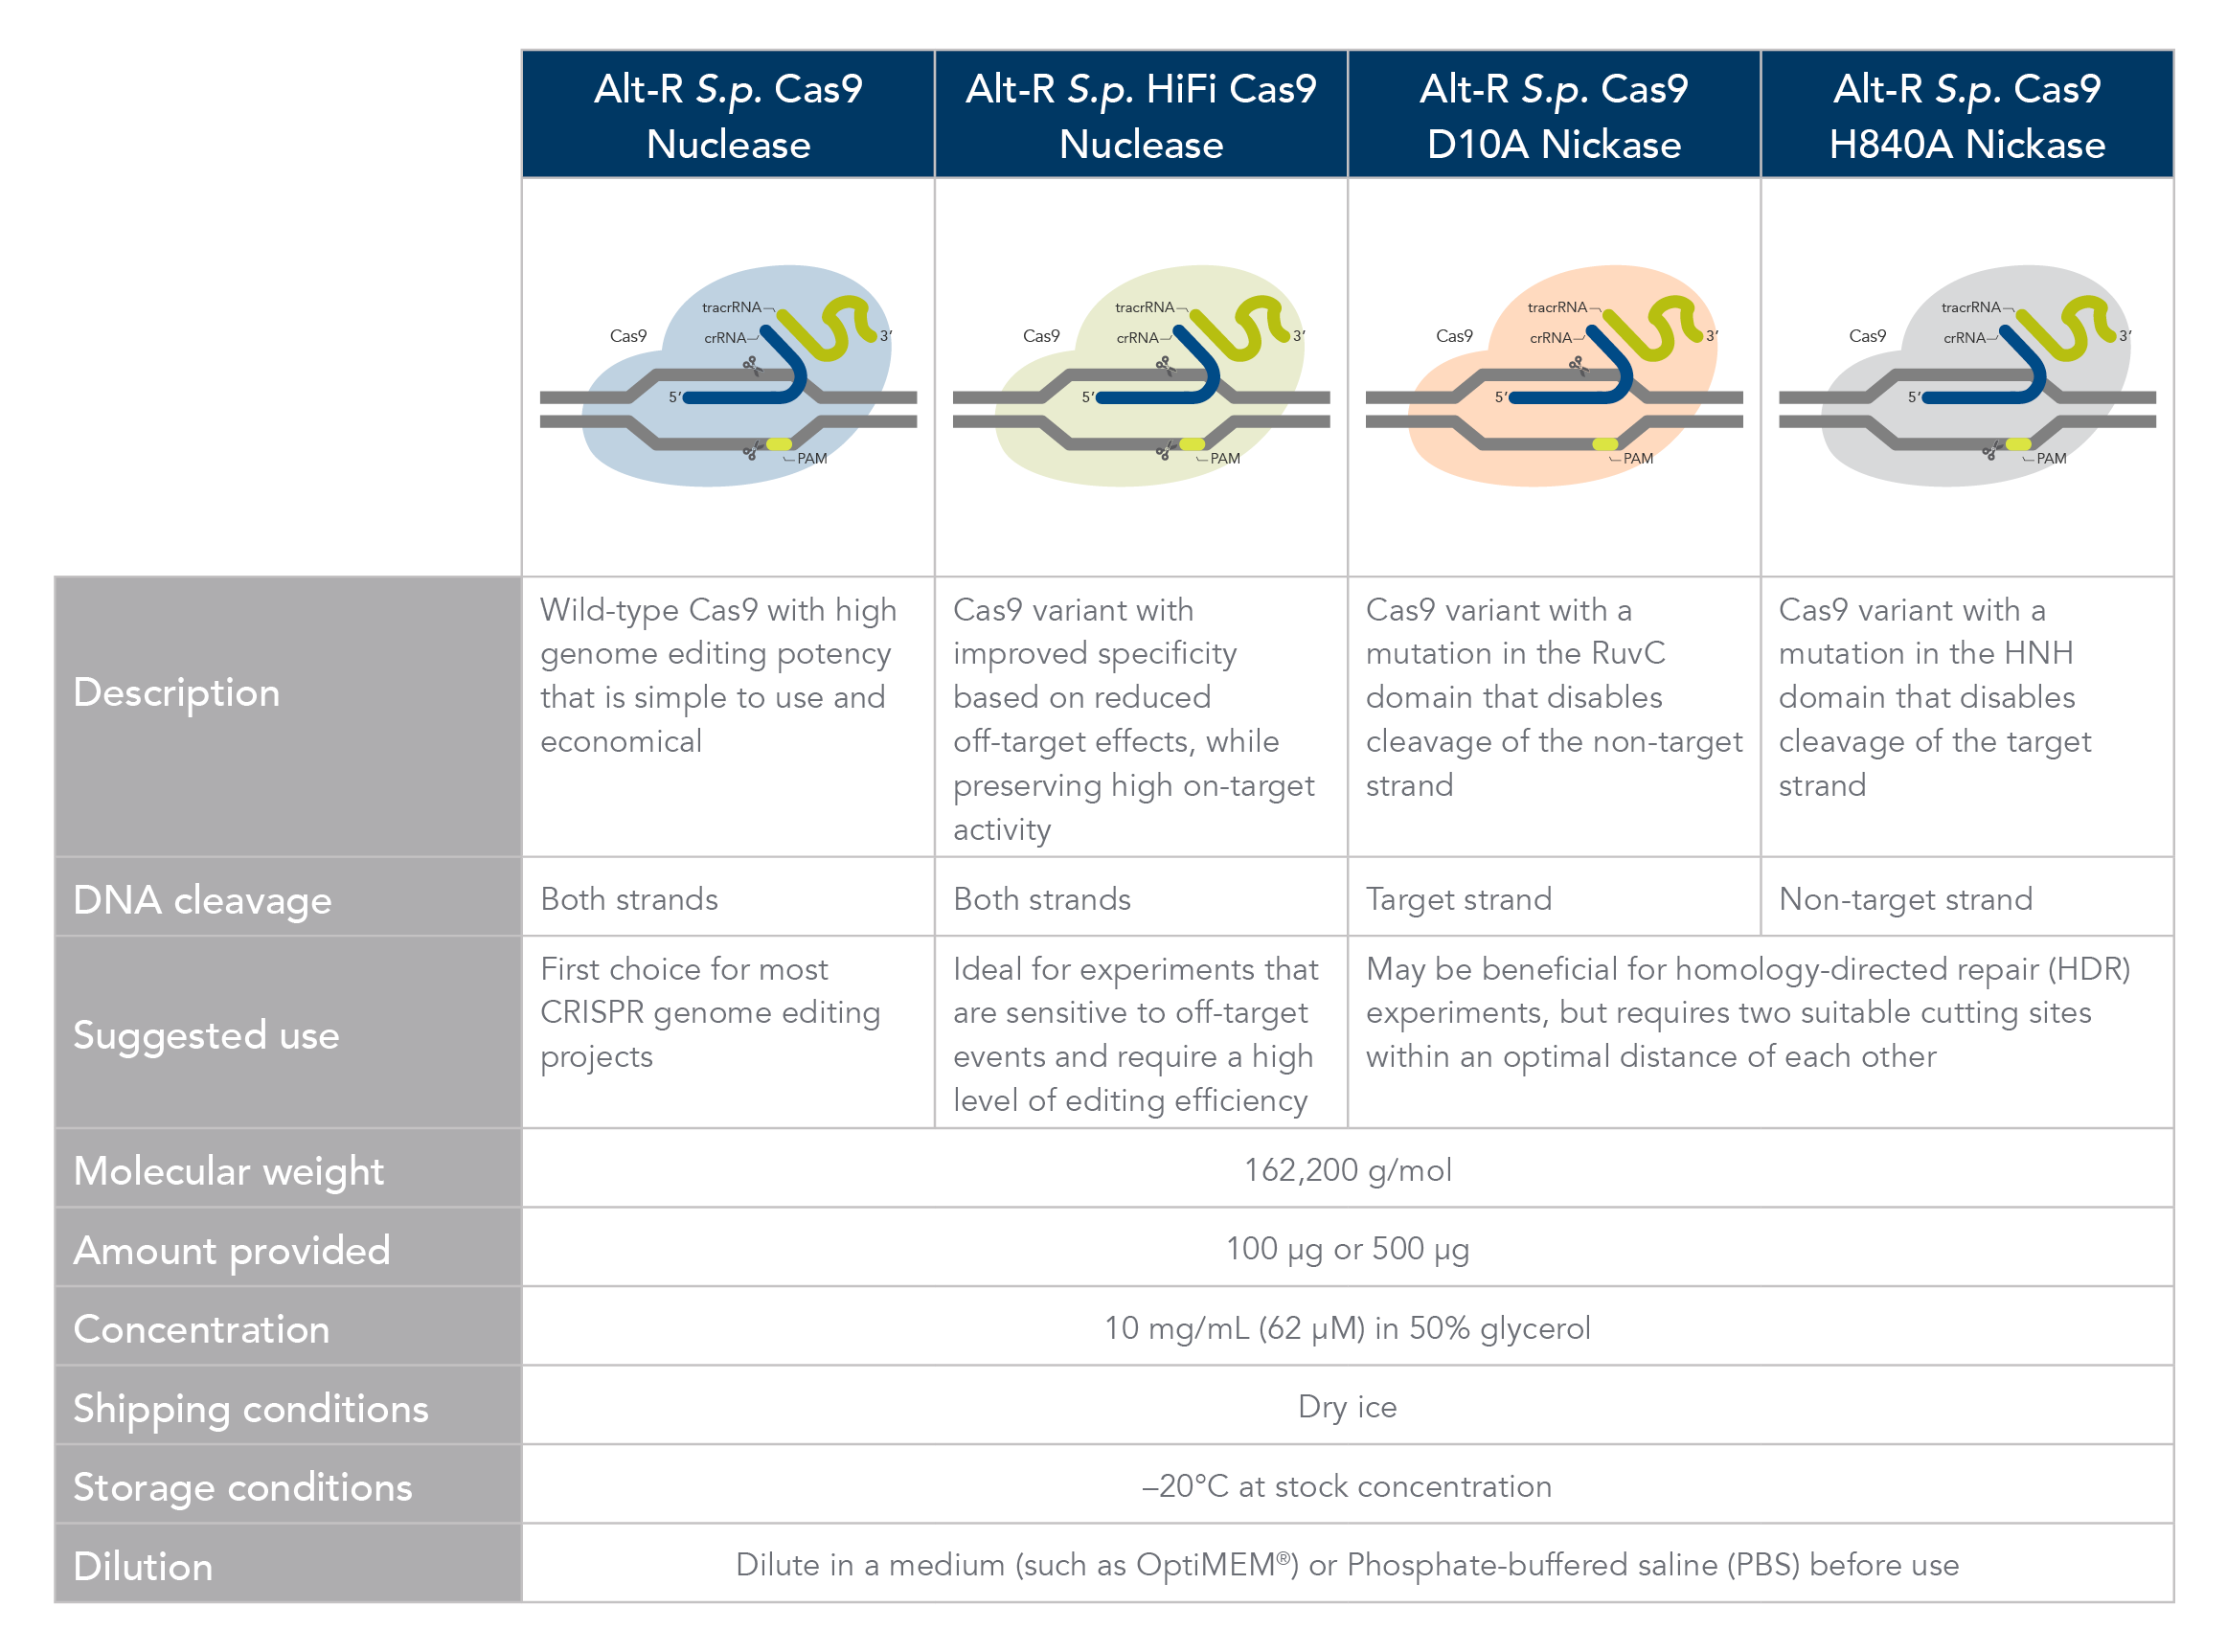 Comparison of Alt-R Cas9 nucleases and nickases.